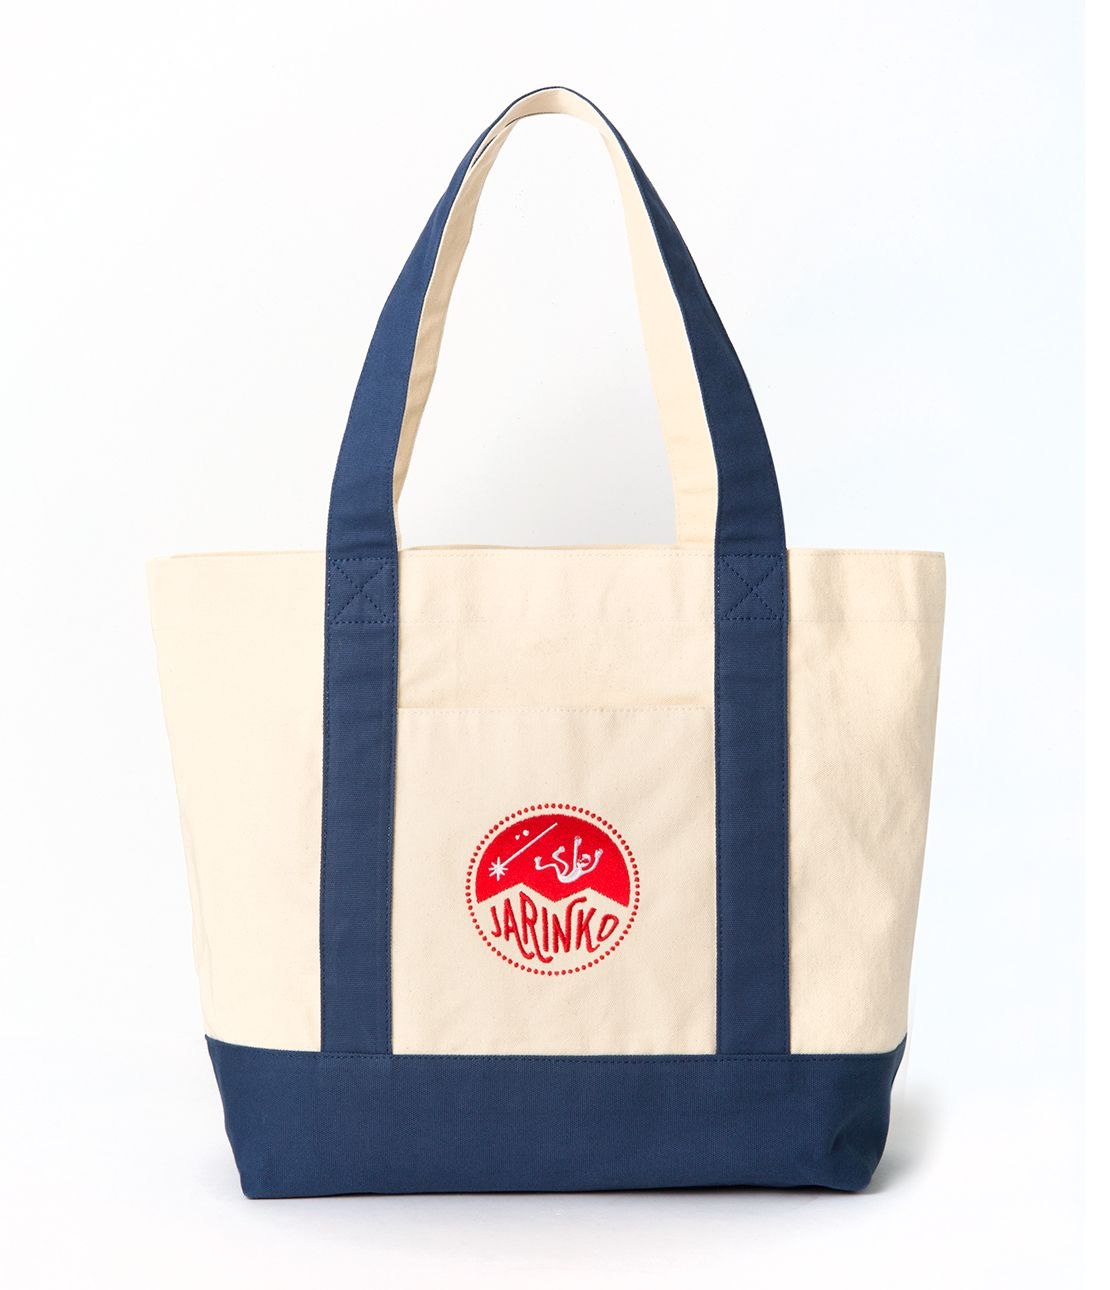 JRK embroidery canvass that bag